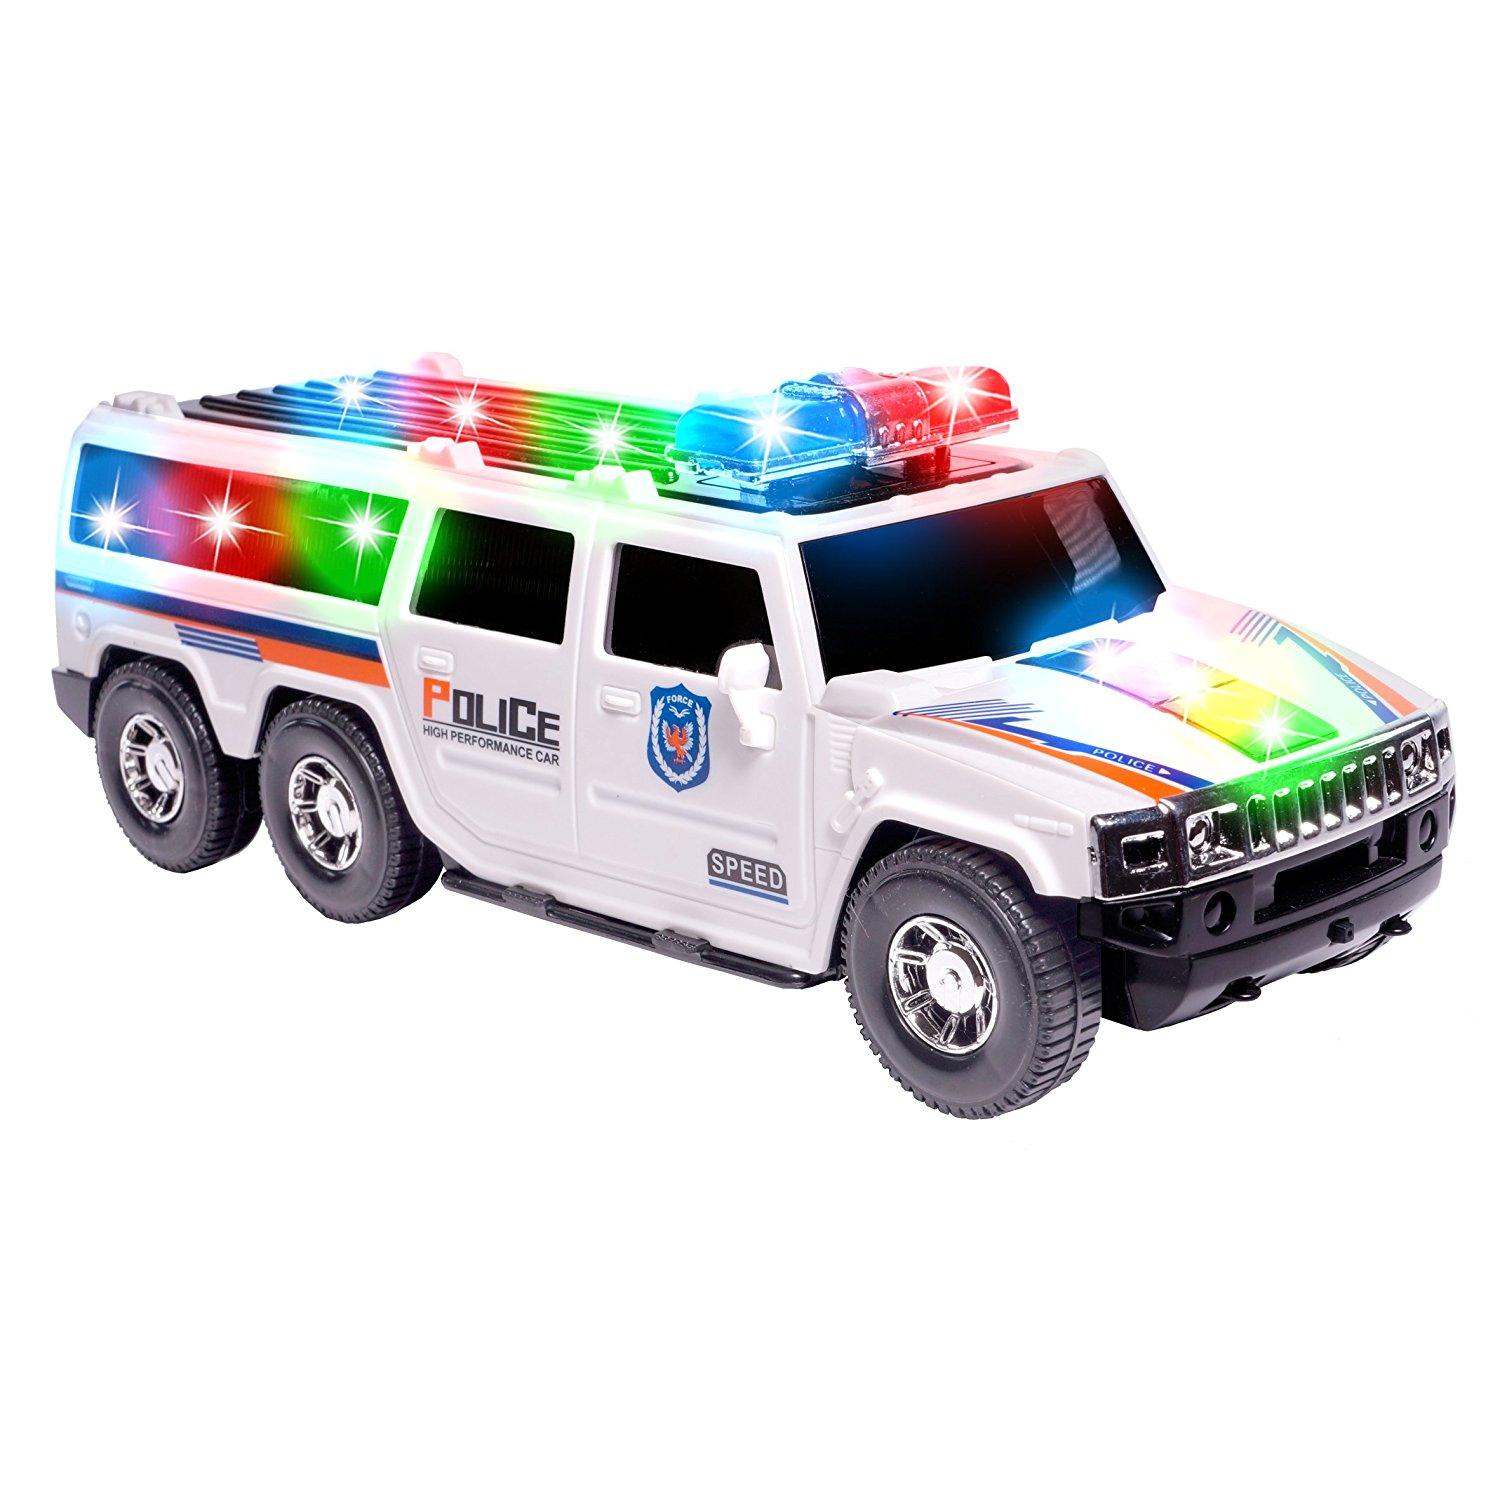 Car For Kids >> Ciftoys Police Toy Car For Kids Suv Cop Car With Colorful Flashing Lights Sirens Sounds Talks Birthday Gift For Boys Toddlers Large Vehicle